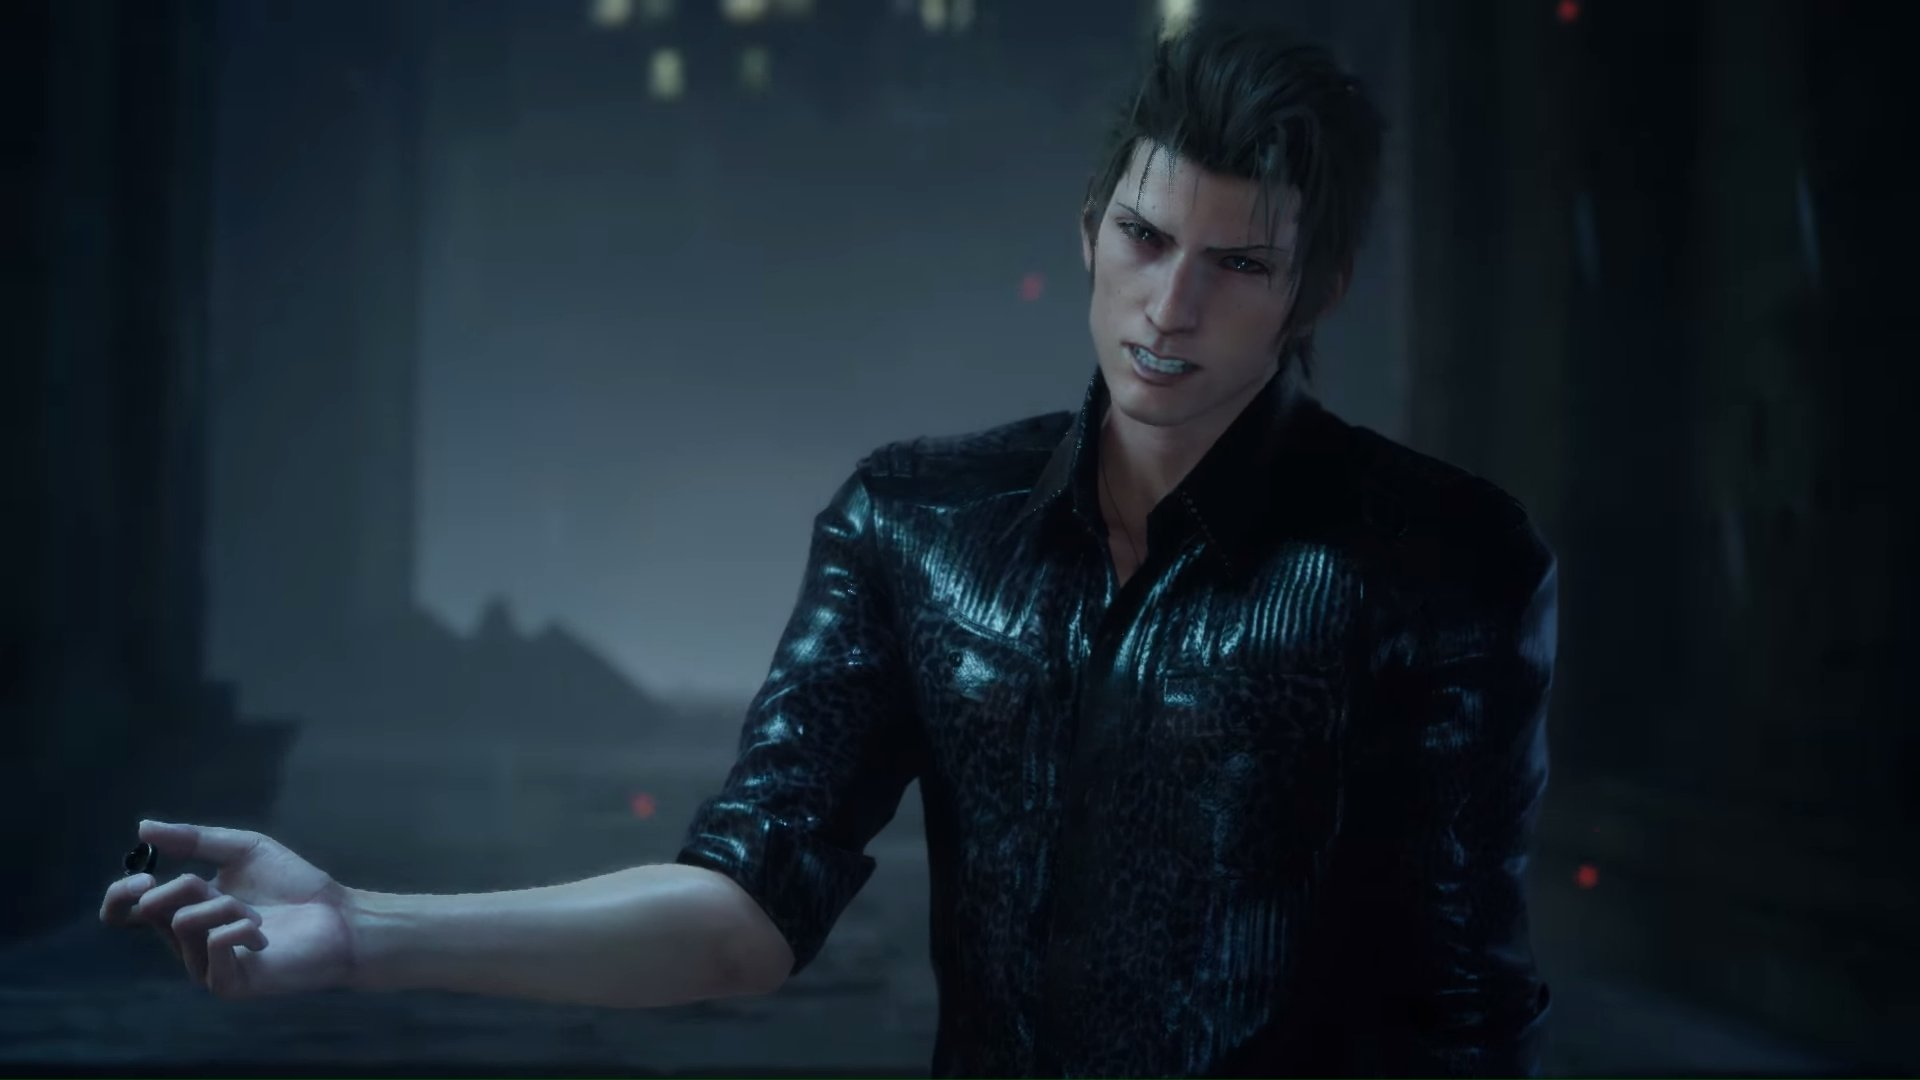 Final Fantasy XV Episode Ignis Coming December 13th